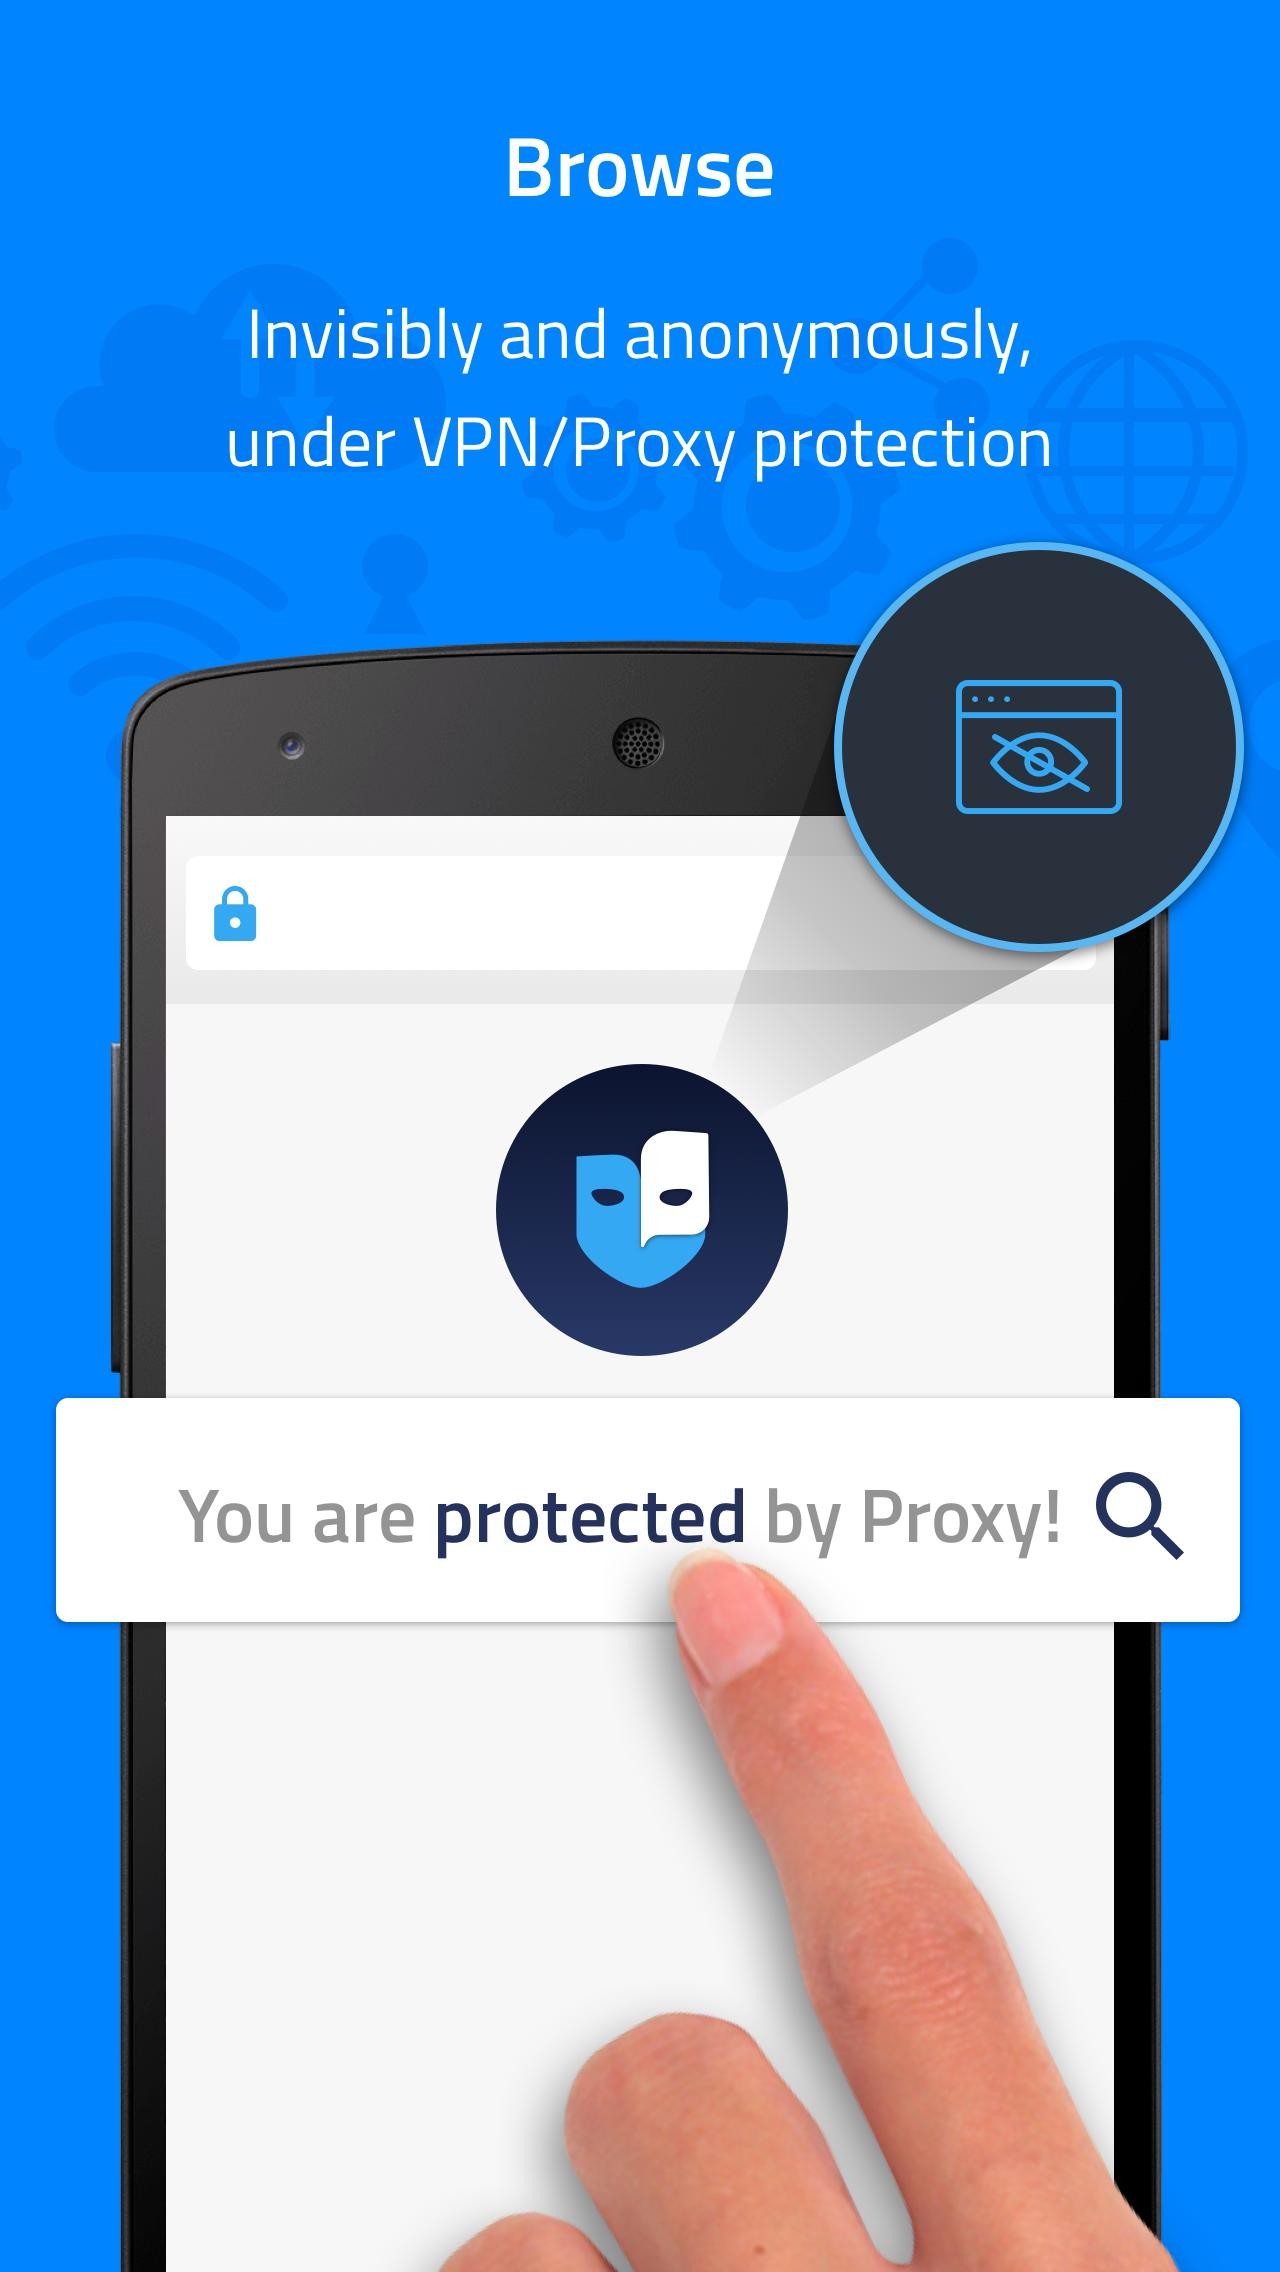 Phantom me: Complete mobile privacy and anonymity for